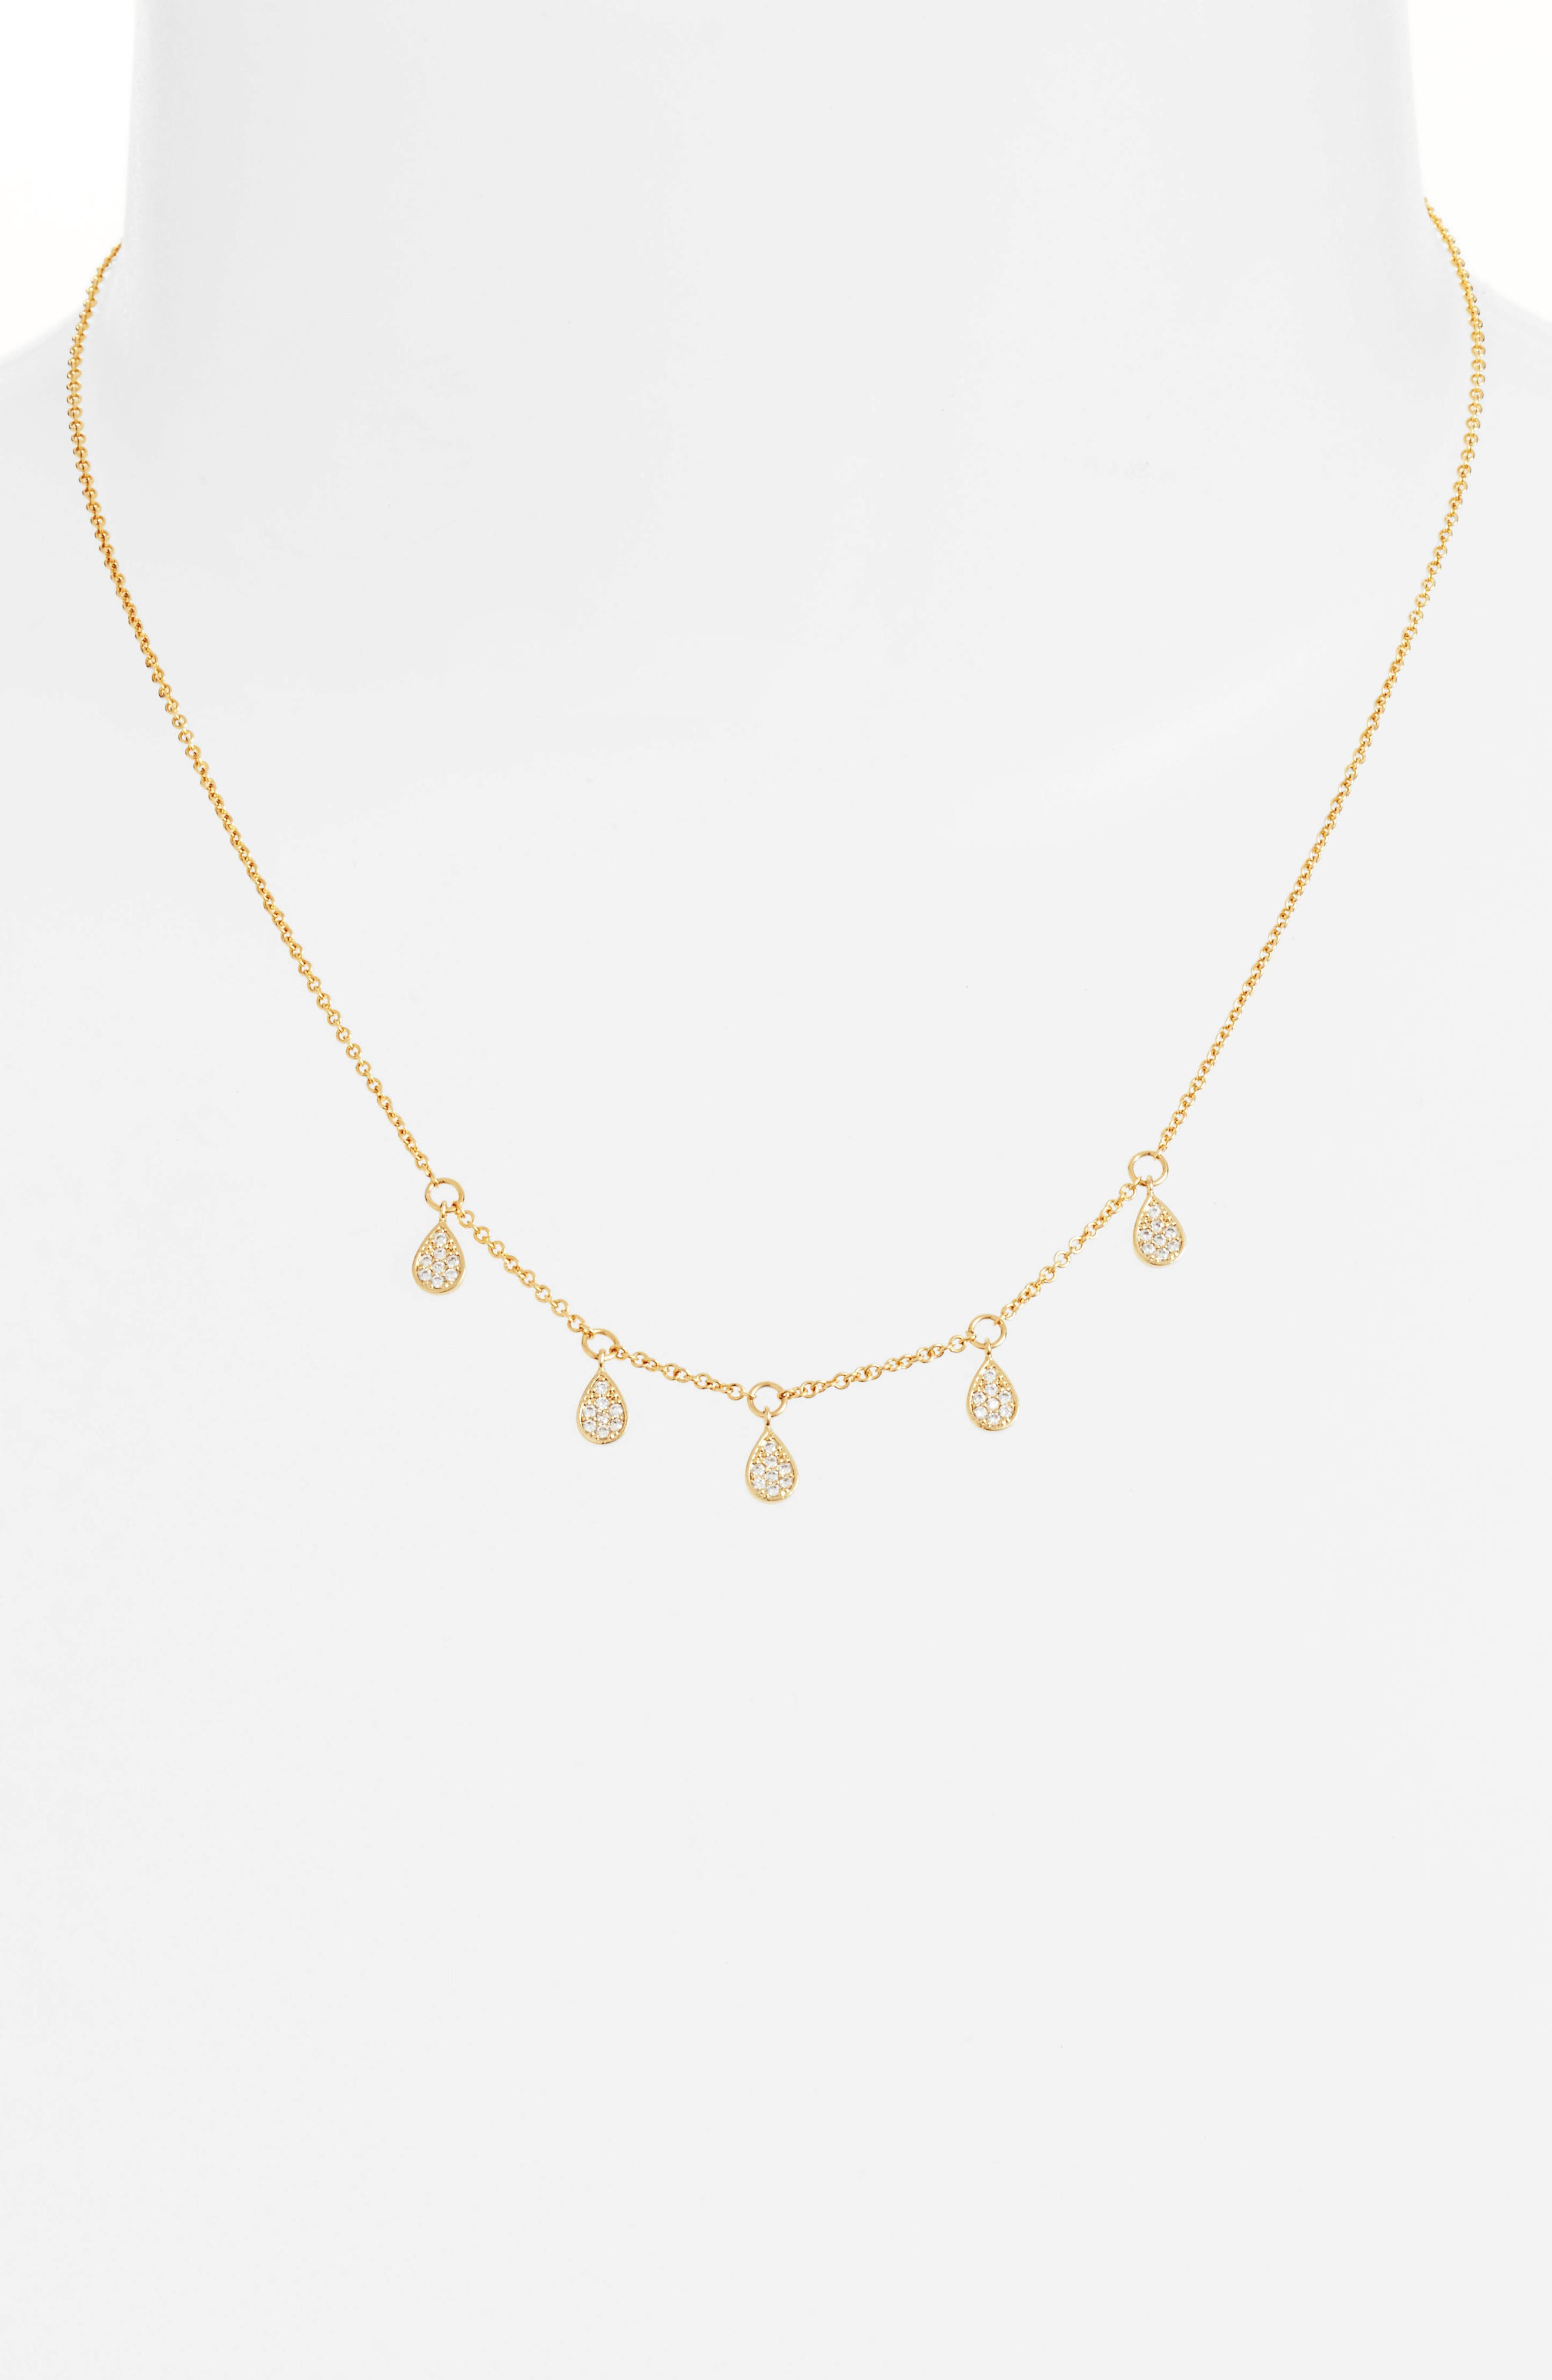 Dewdrop Lariat Necklace,                         Main,                         color, Gold